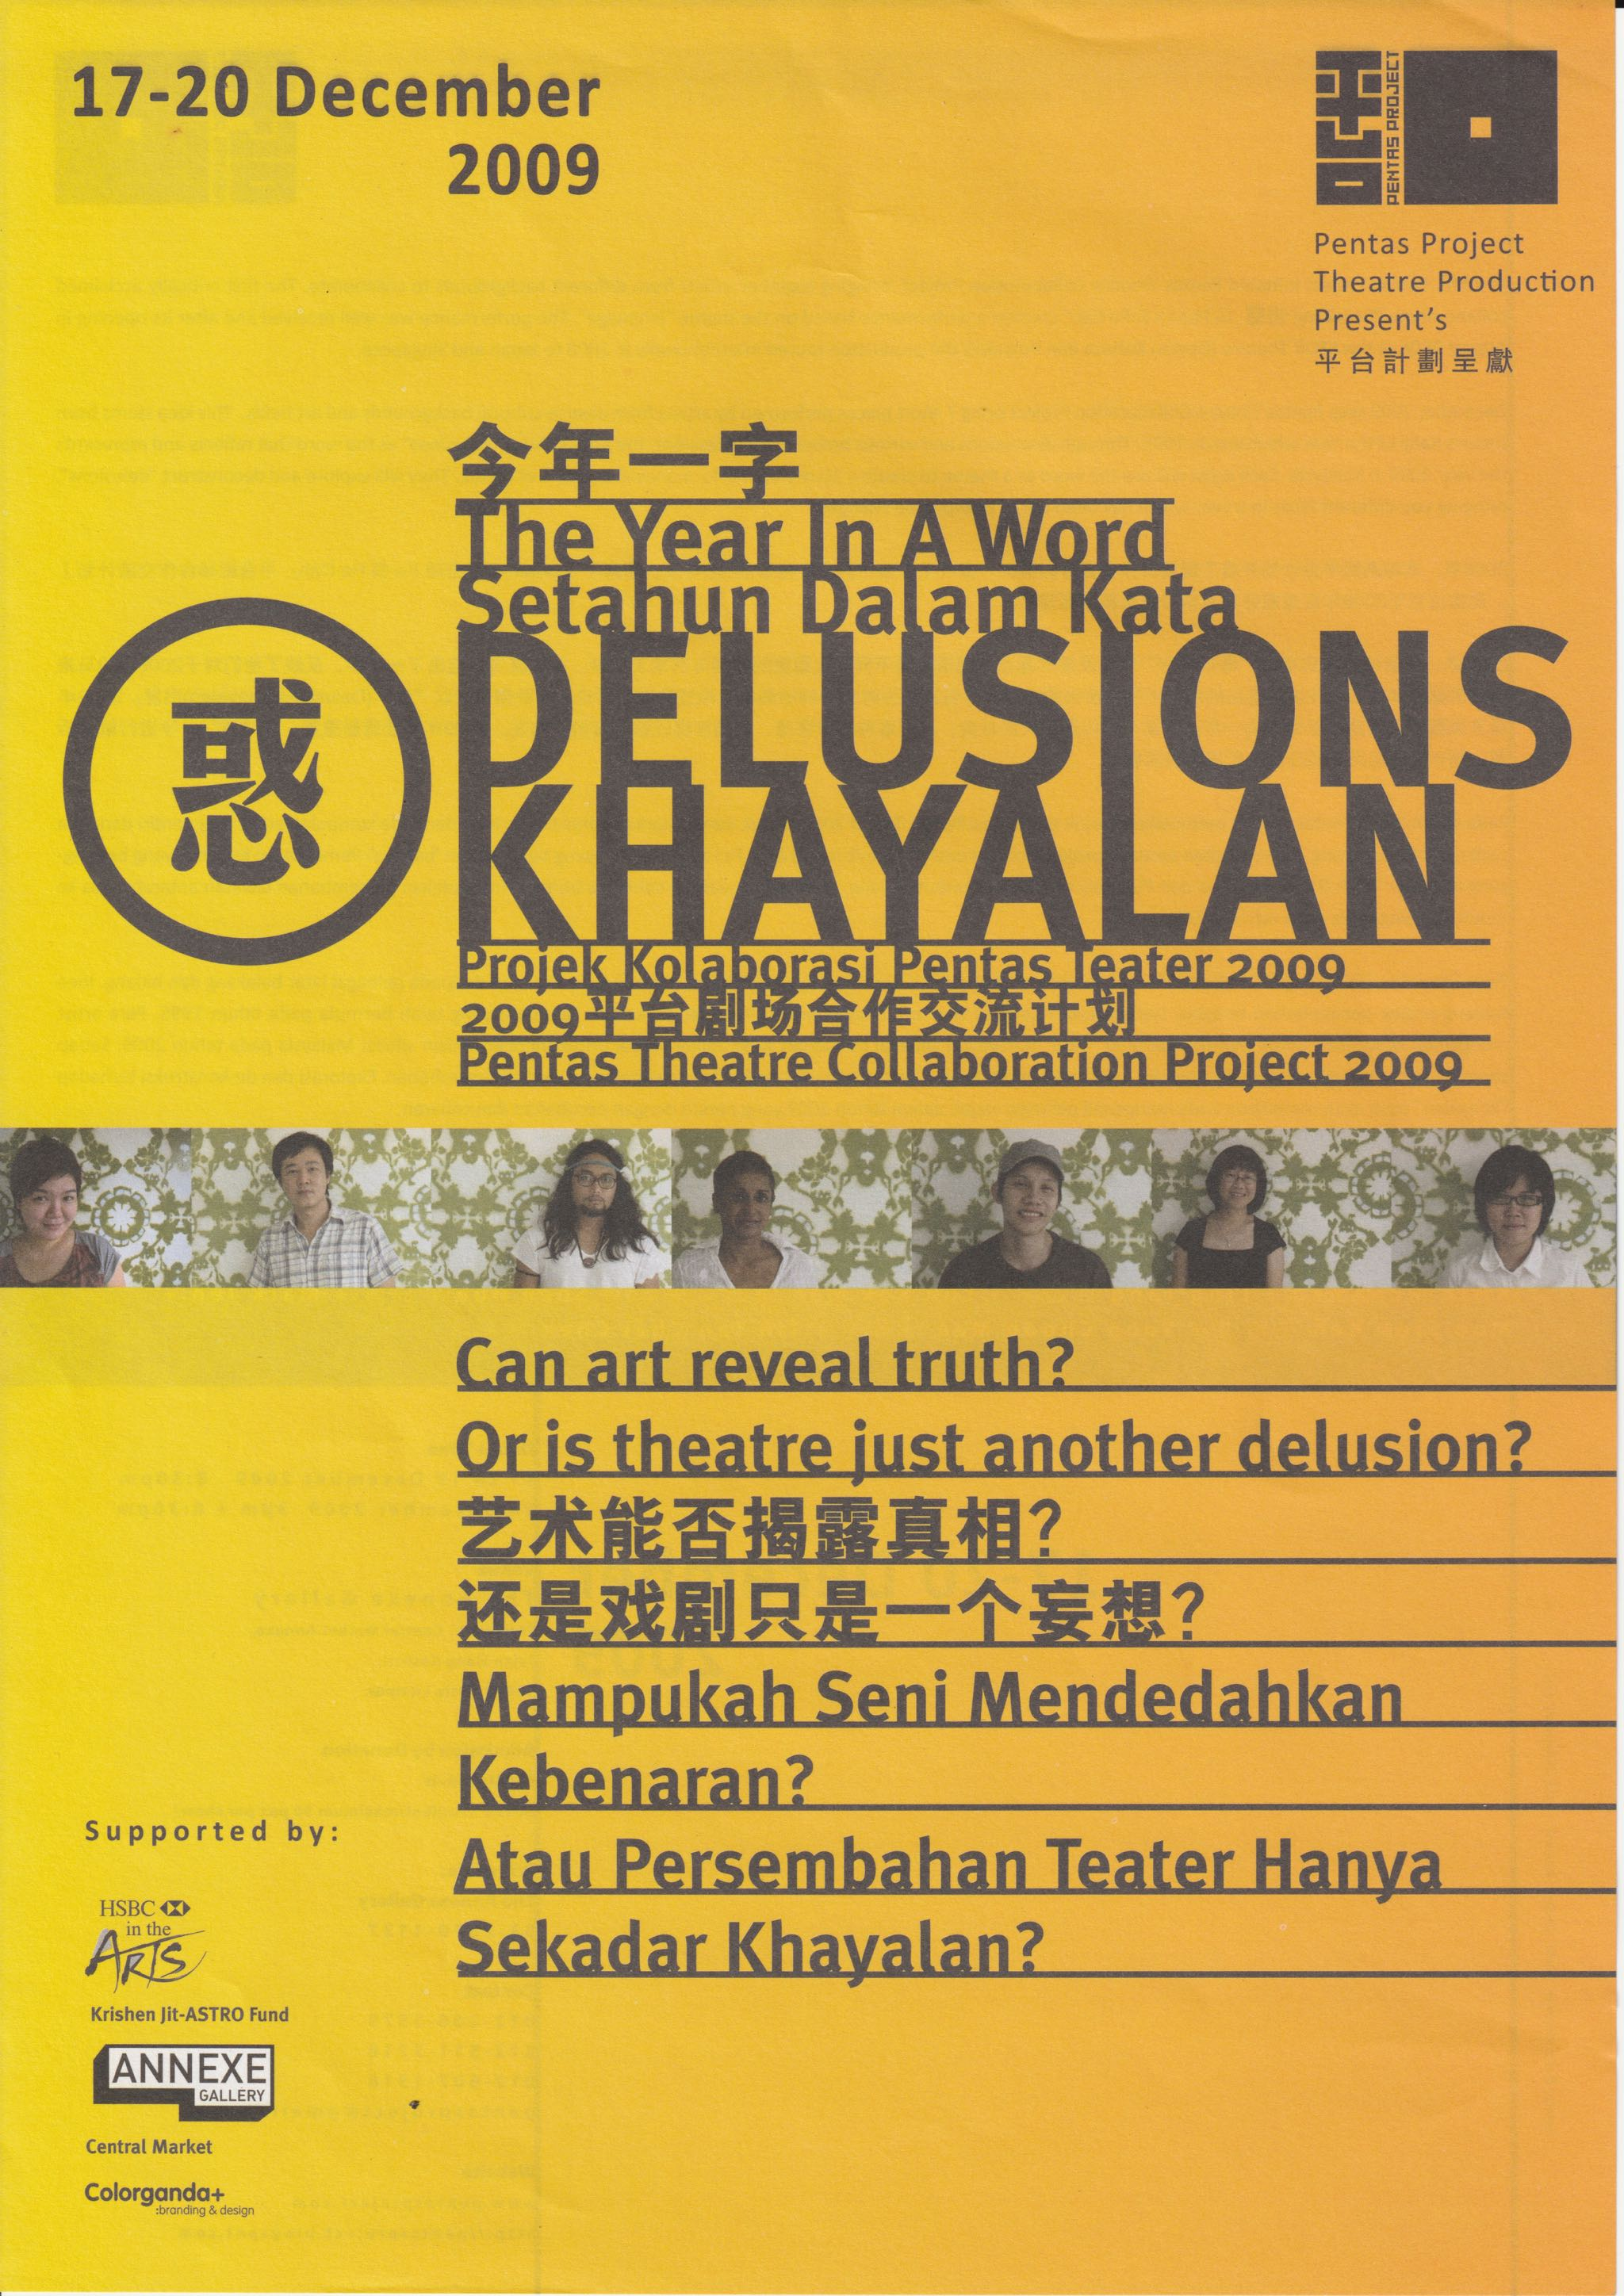 2009 Delusions Flyer 01